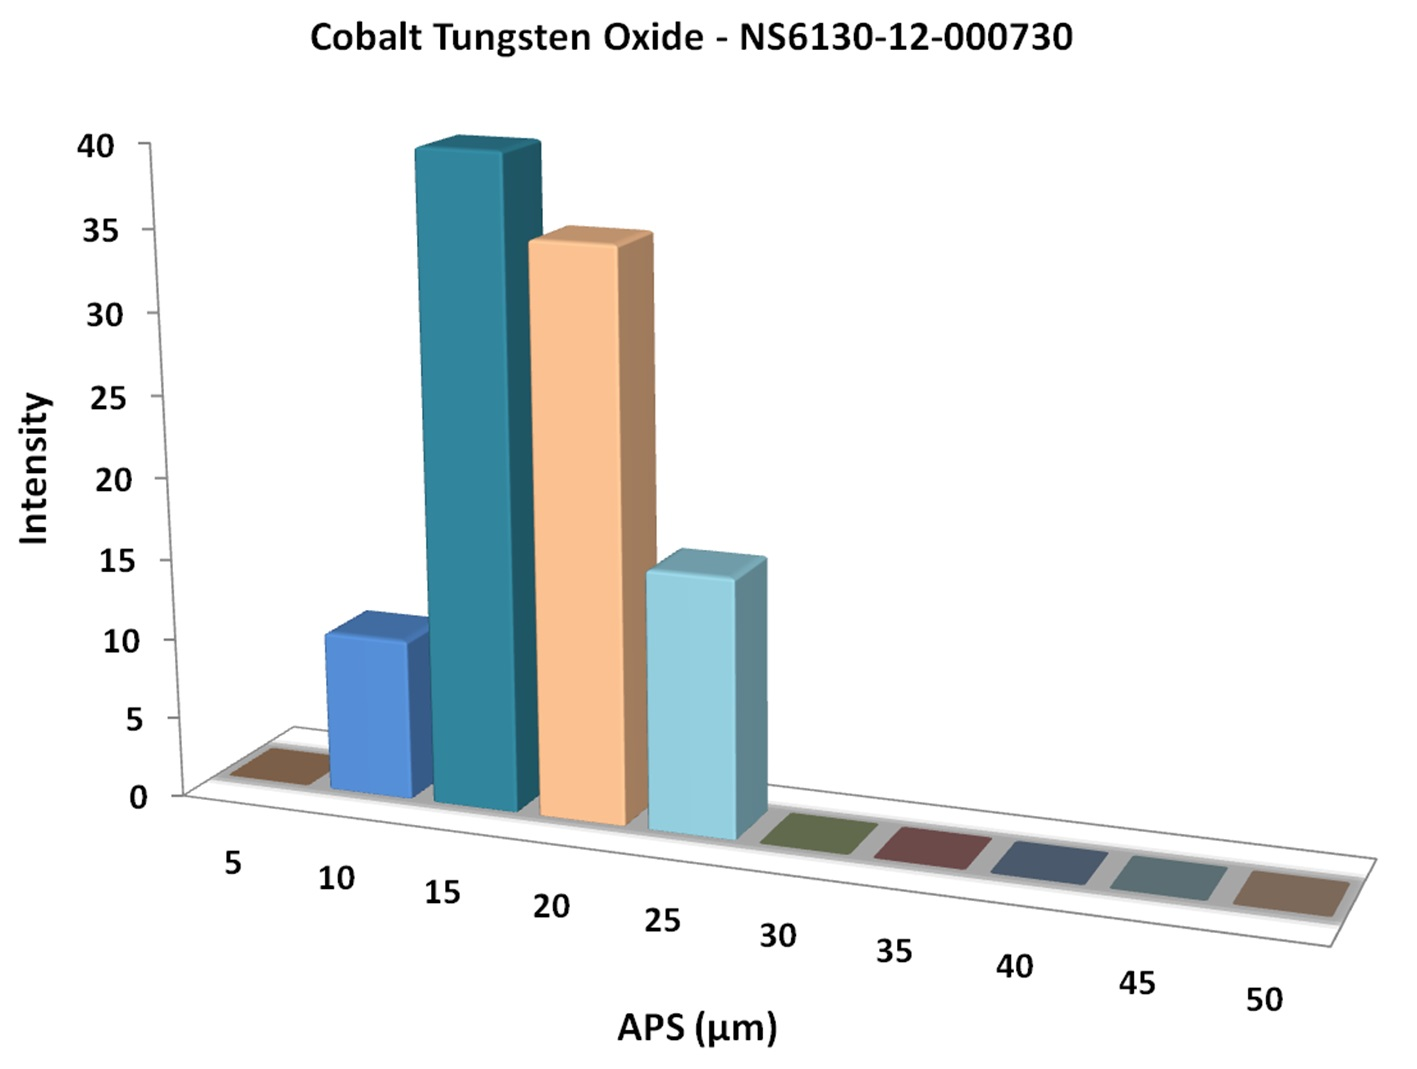 Particles Size Analysis - Cobalt Tungsten Oxide